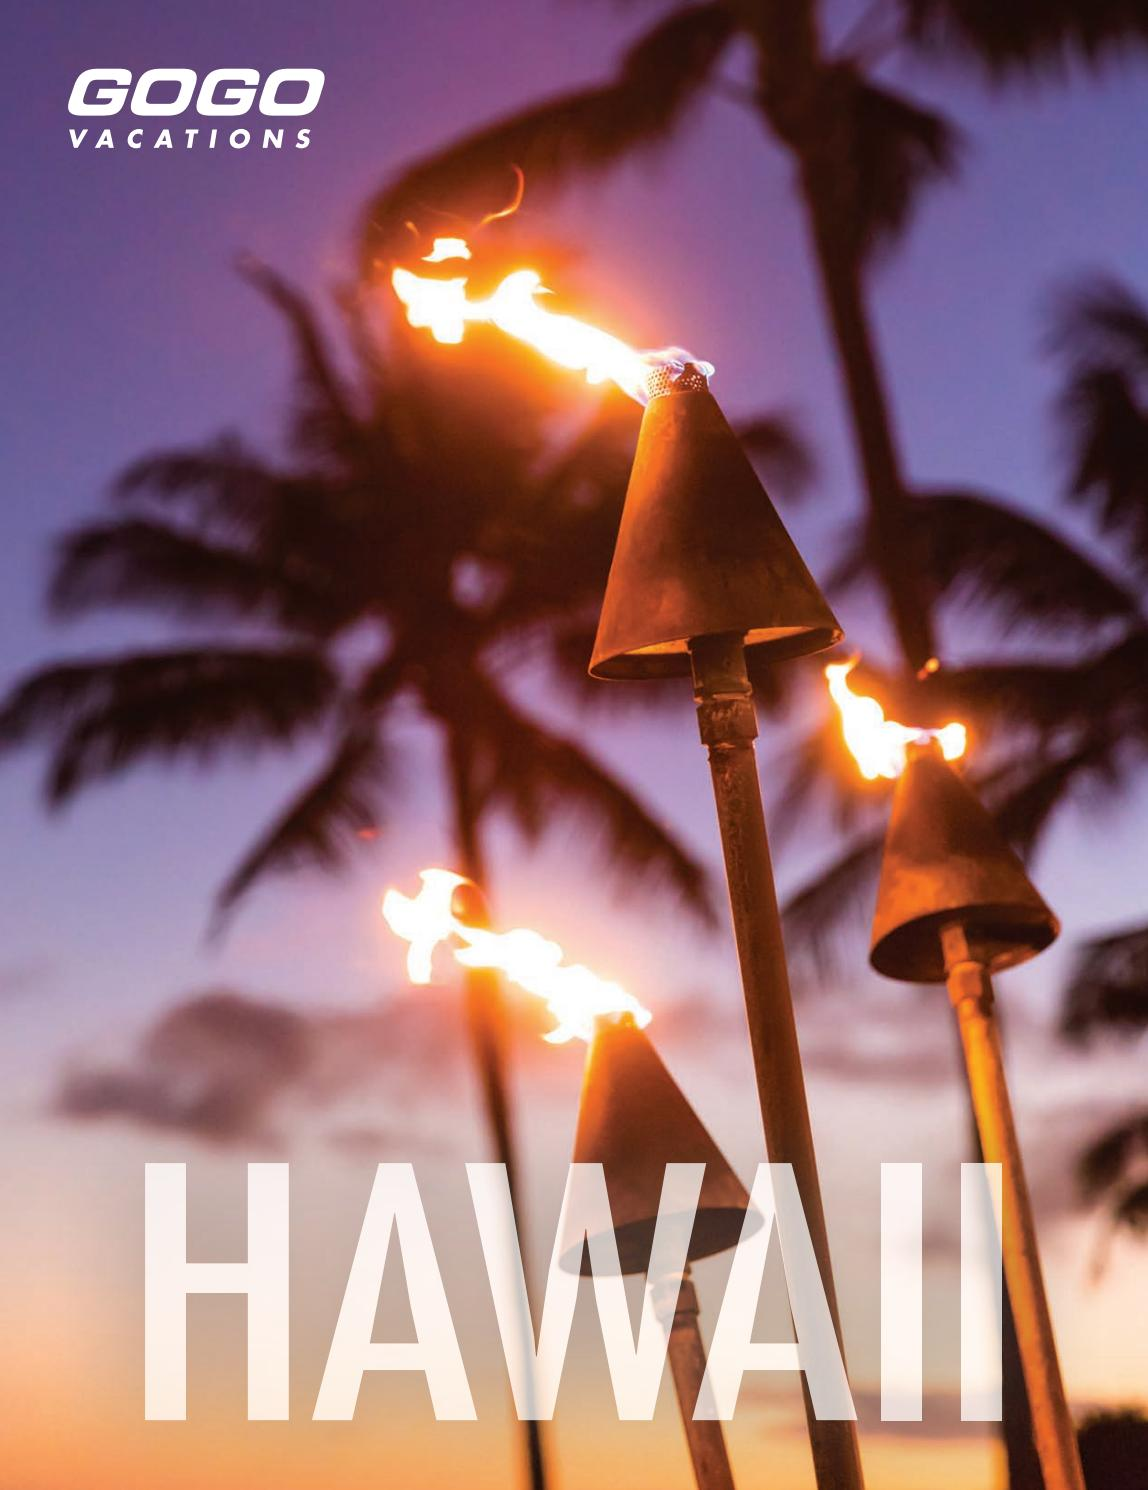 GOGO Vacations | Hawaii by gogovacations - issuu